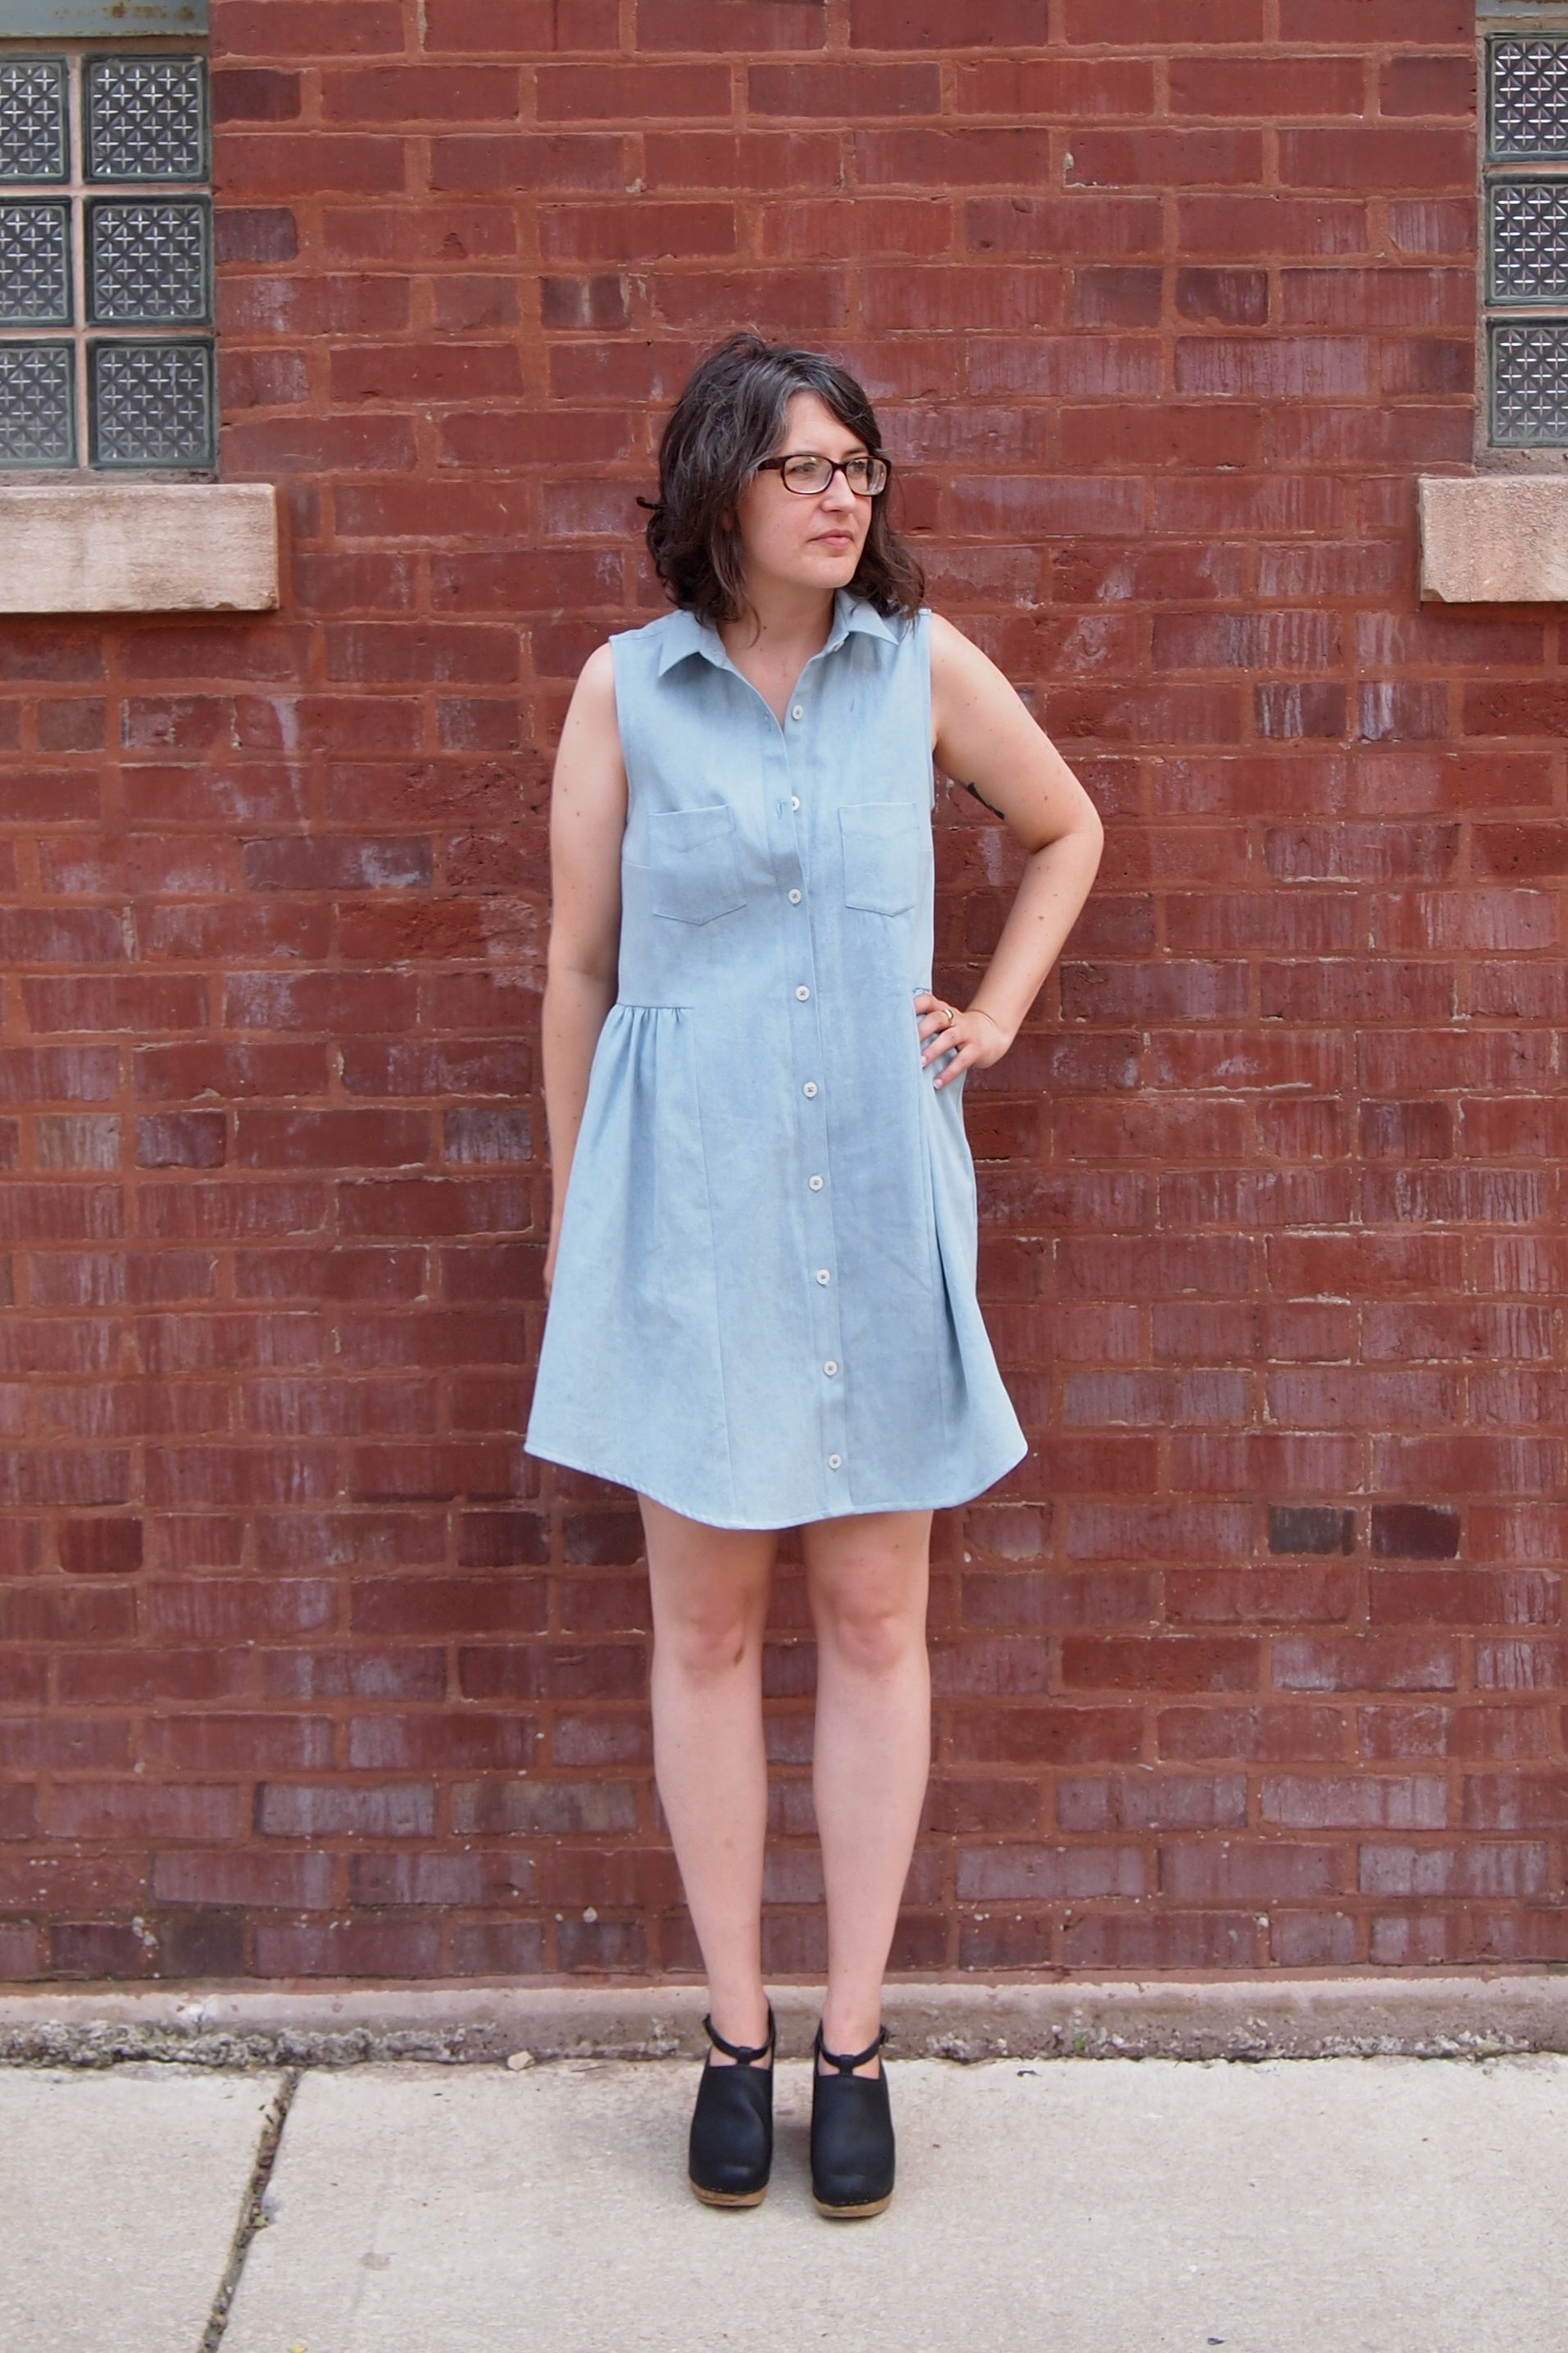 Grainline Studio | Alder Shirtdress V2: Light Denim